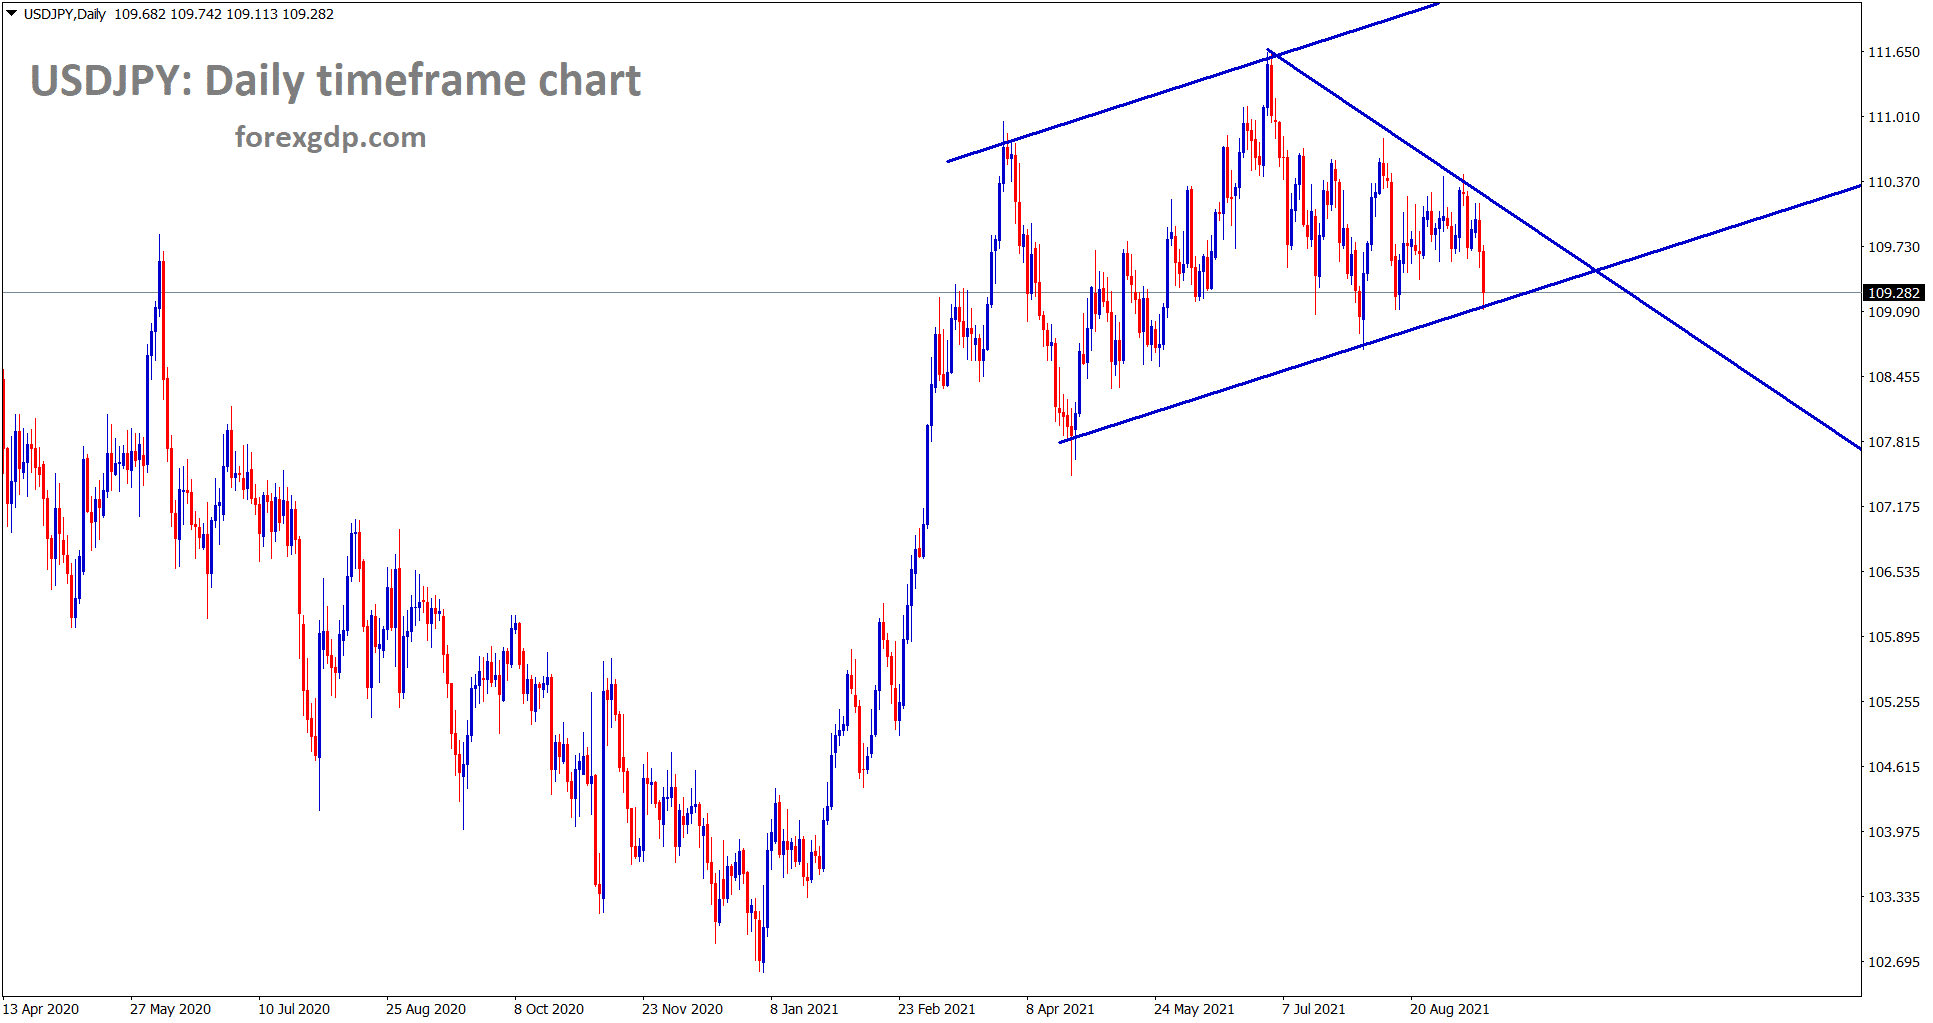 USDJPY is standing at the higher low level of a channel range